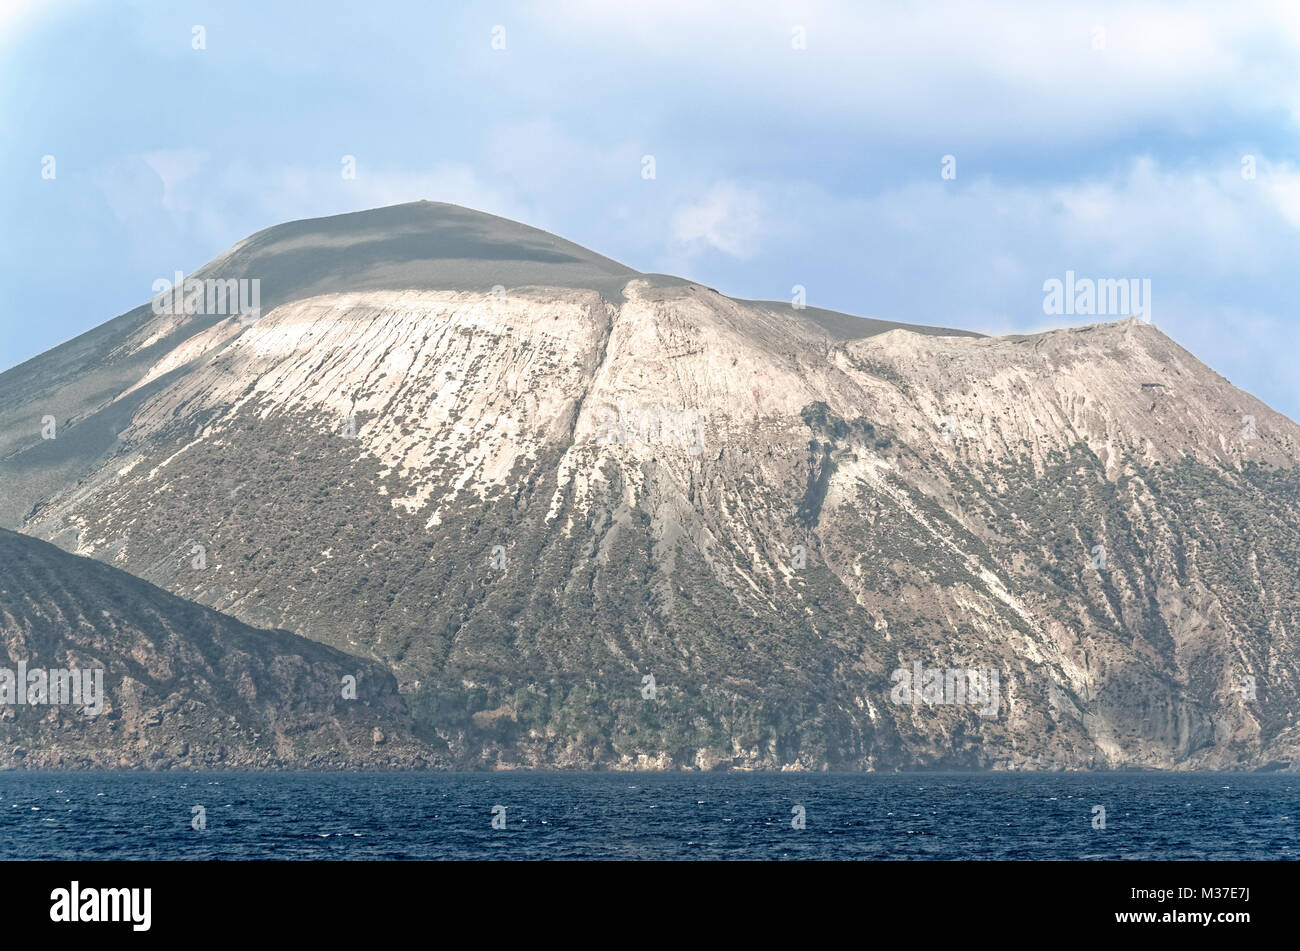 Aeolian Islands, Lipari island, Italy Stock Photo